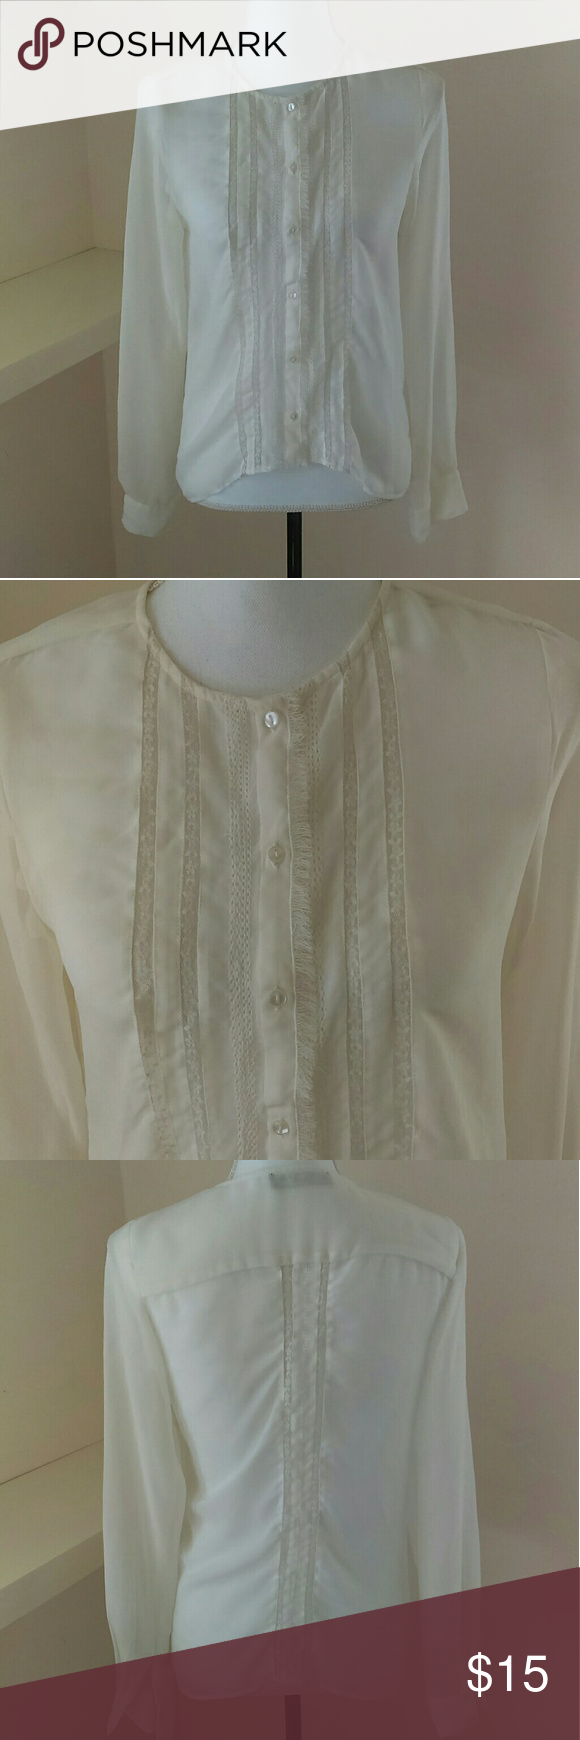 🌼SALE 🌼 Sanctuary Sheer and lace Button Up Top This sheer button up top is off white and has lovely lace detail in the front and back. Sanctuary Tops